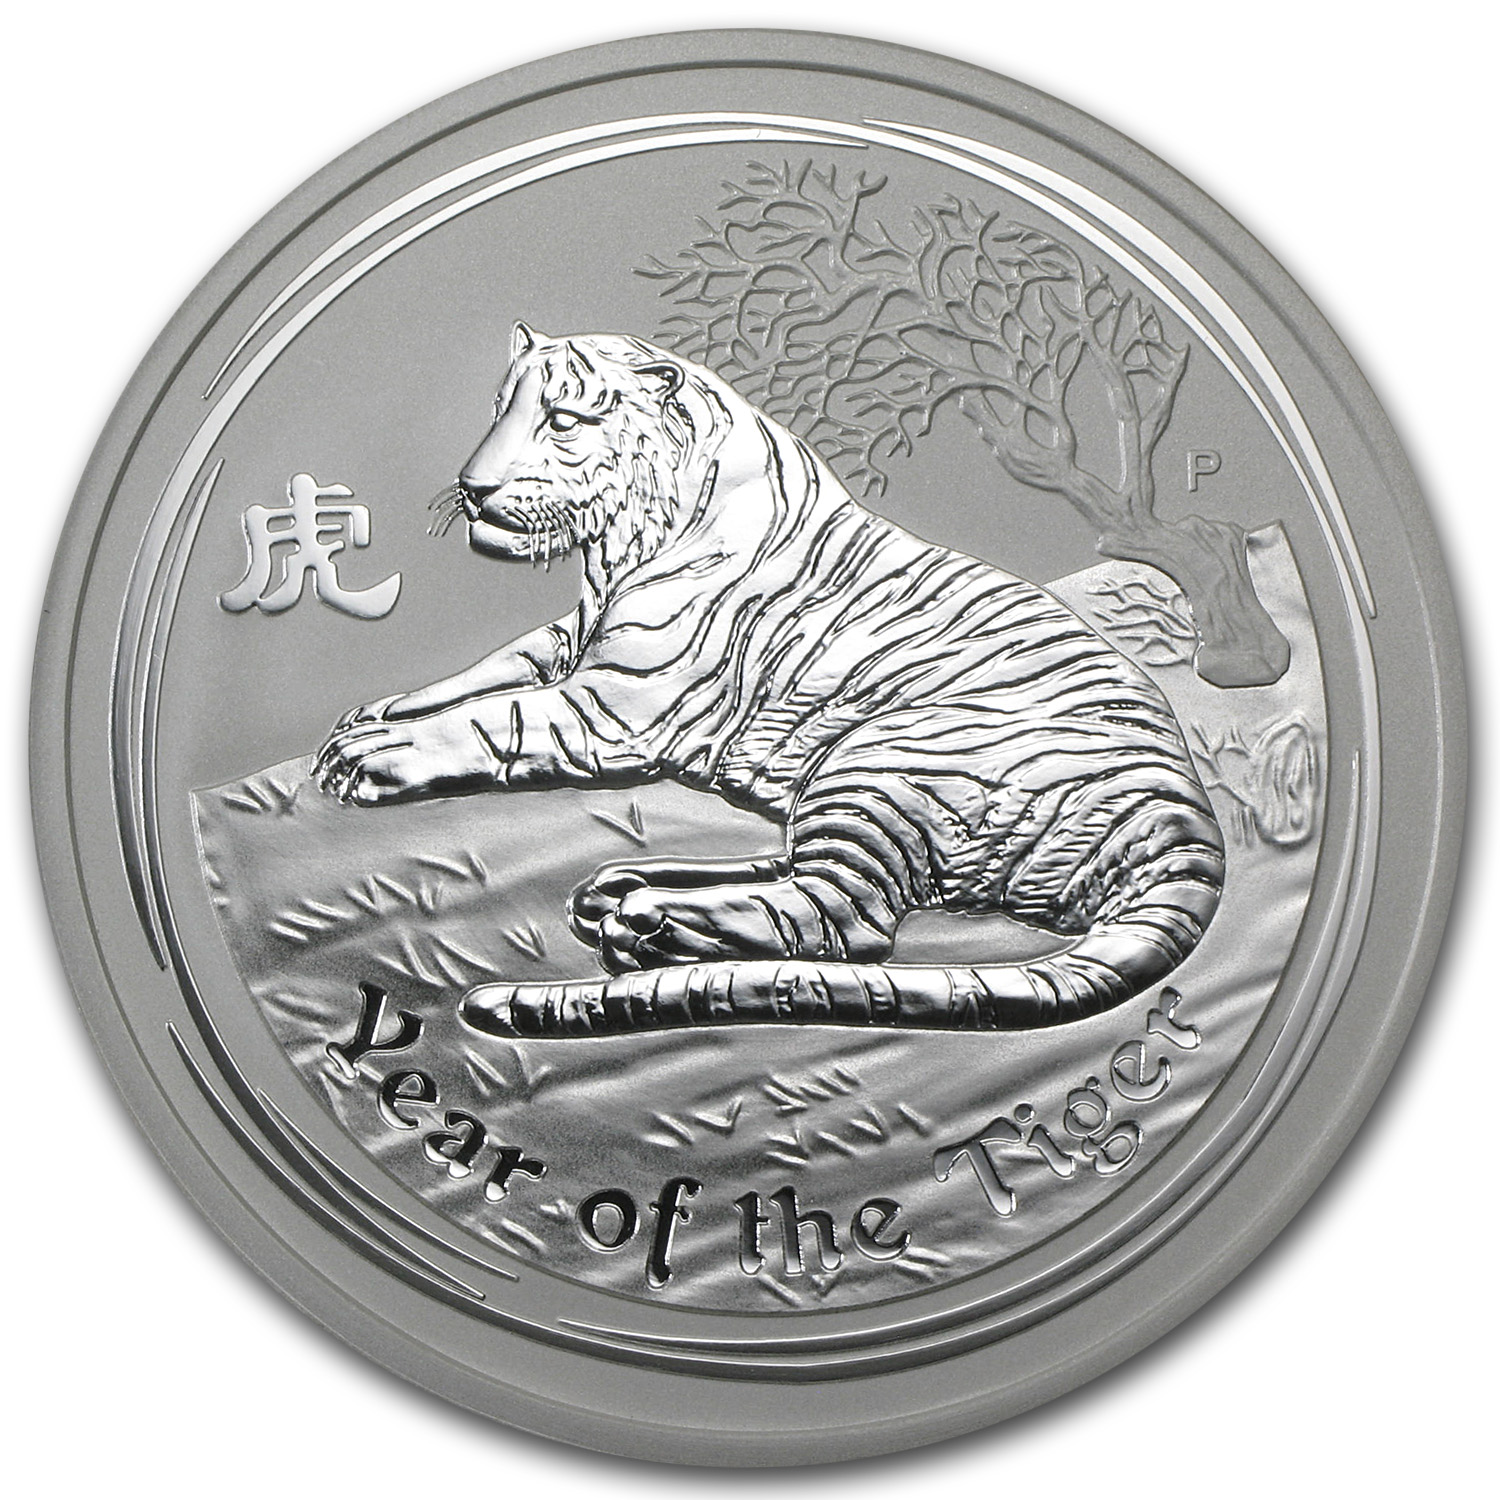 2010 5 oz Silver Australian Year of the Tiger Coin (Series II)